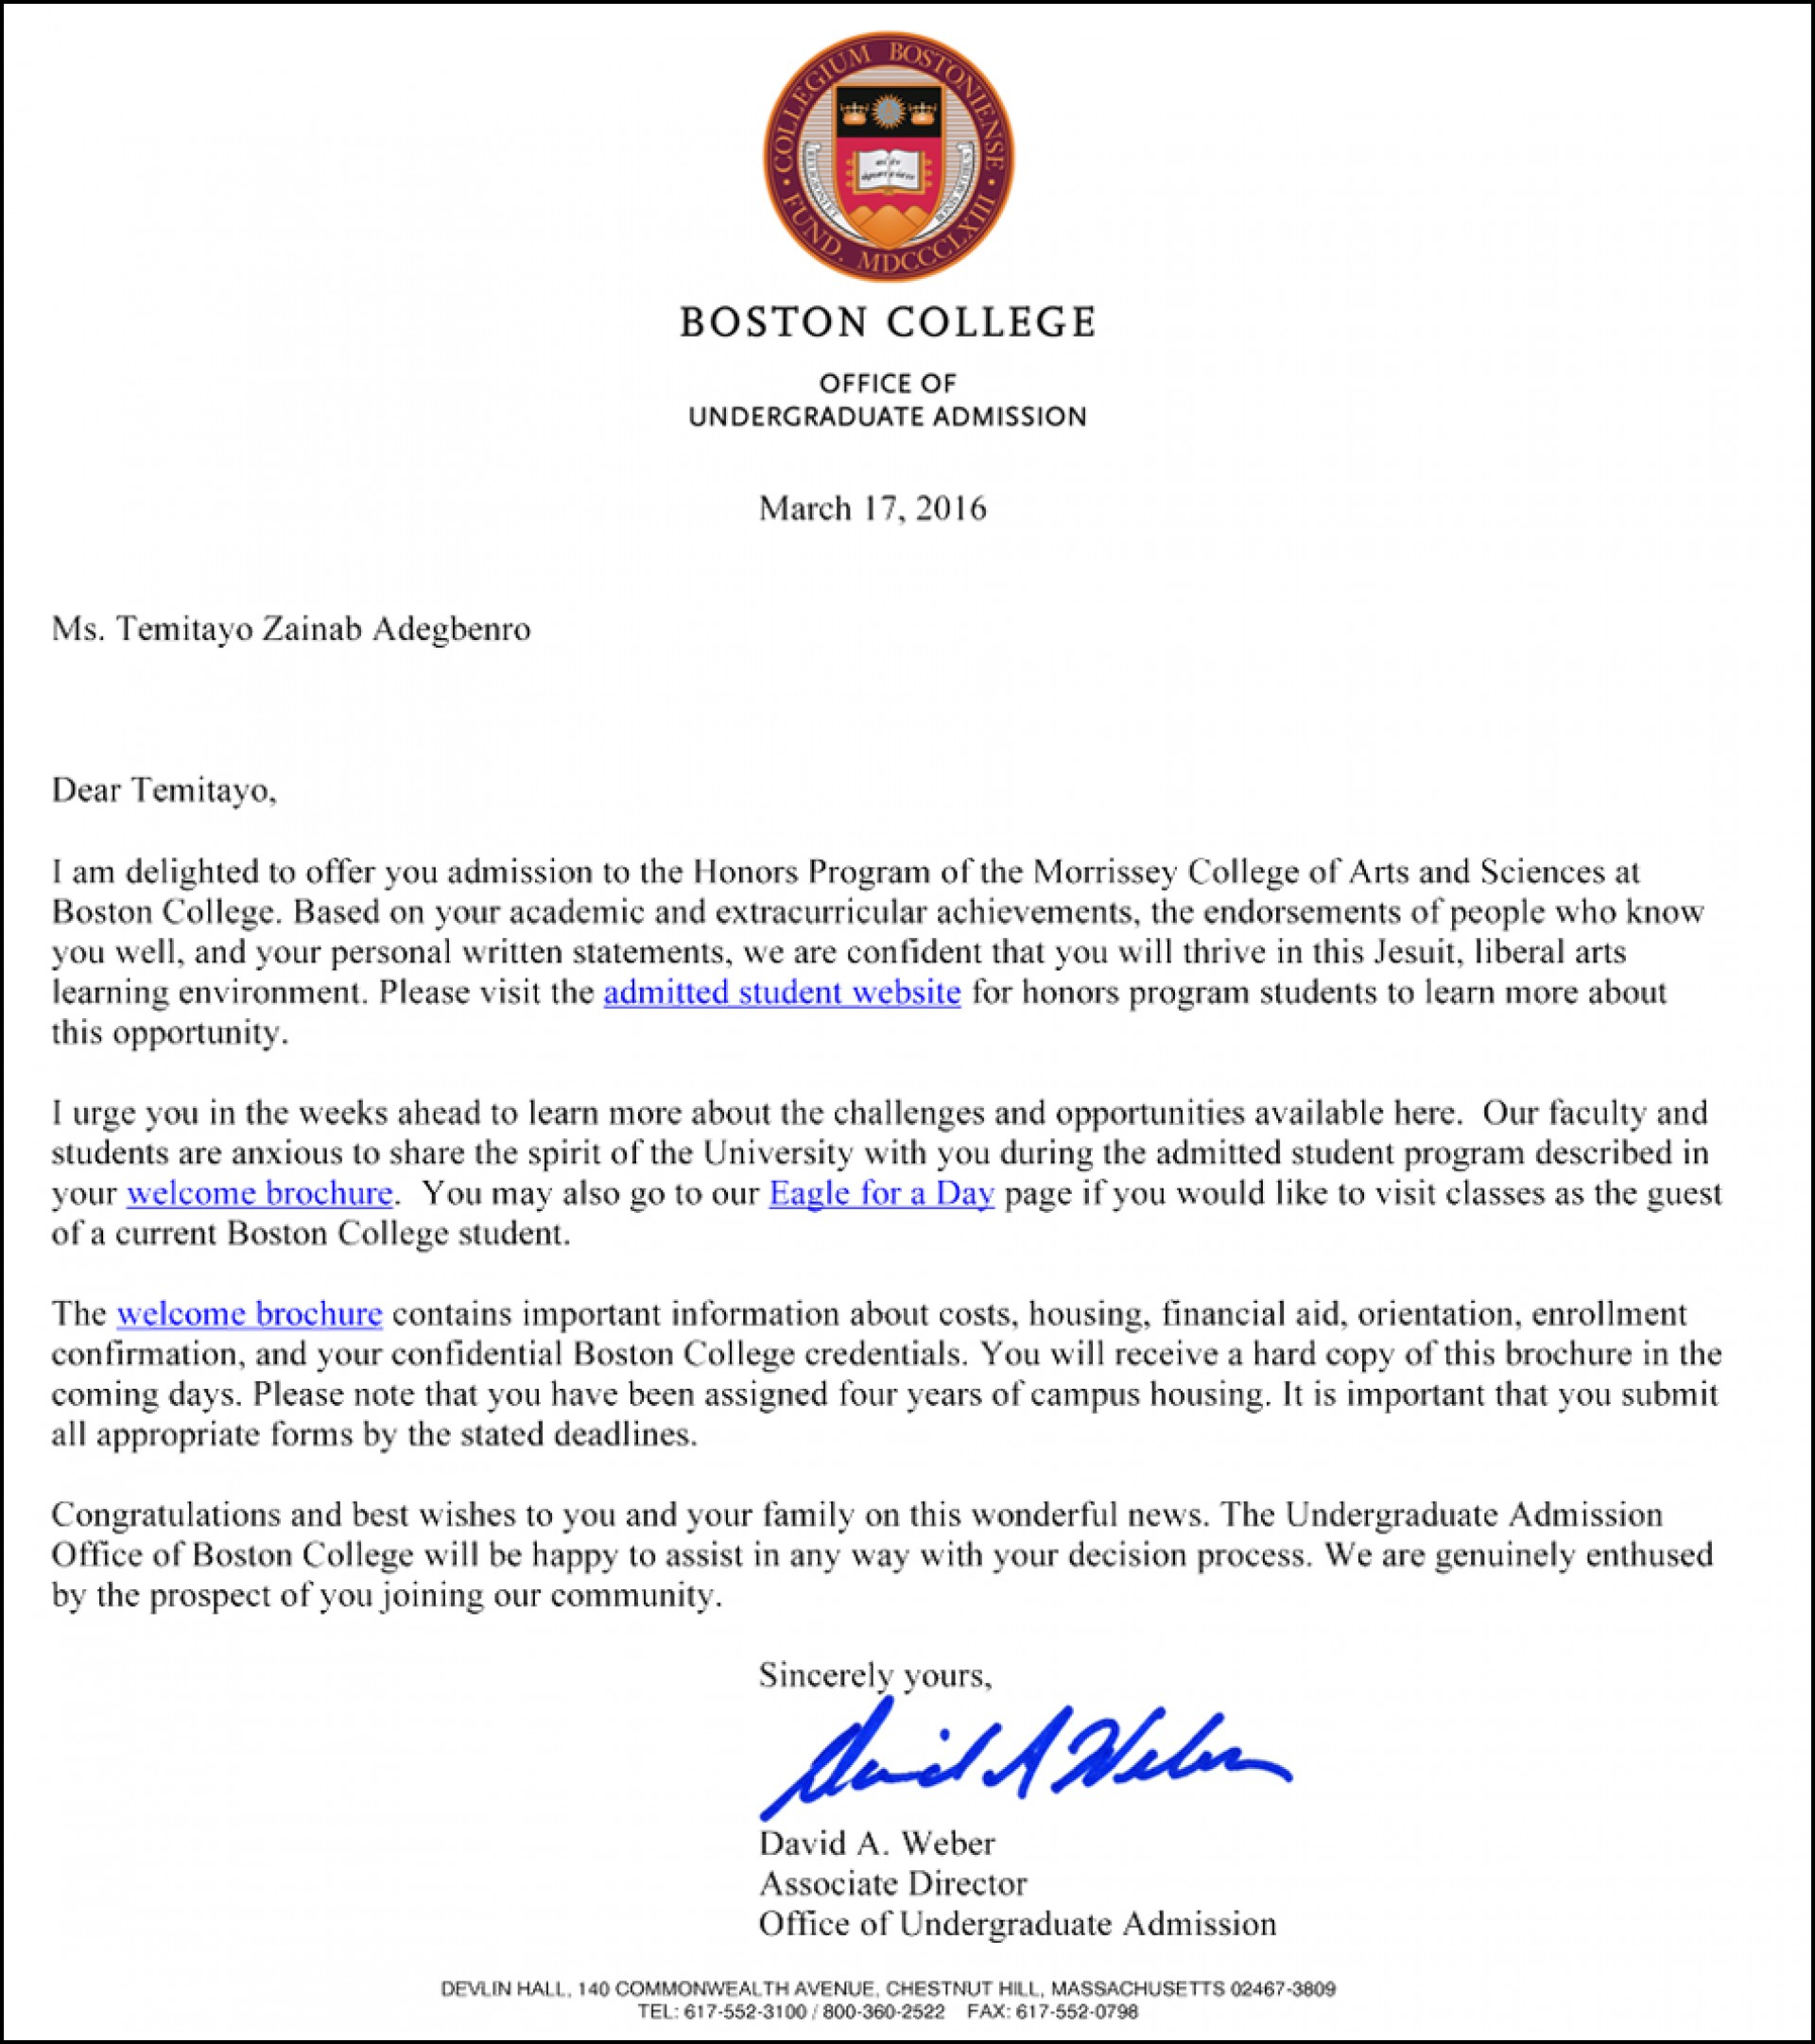 does boston college track demonstrated interest